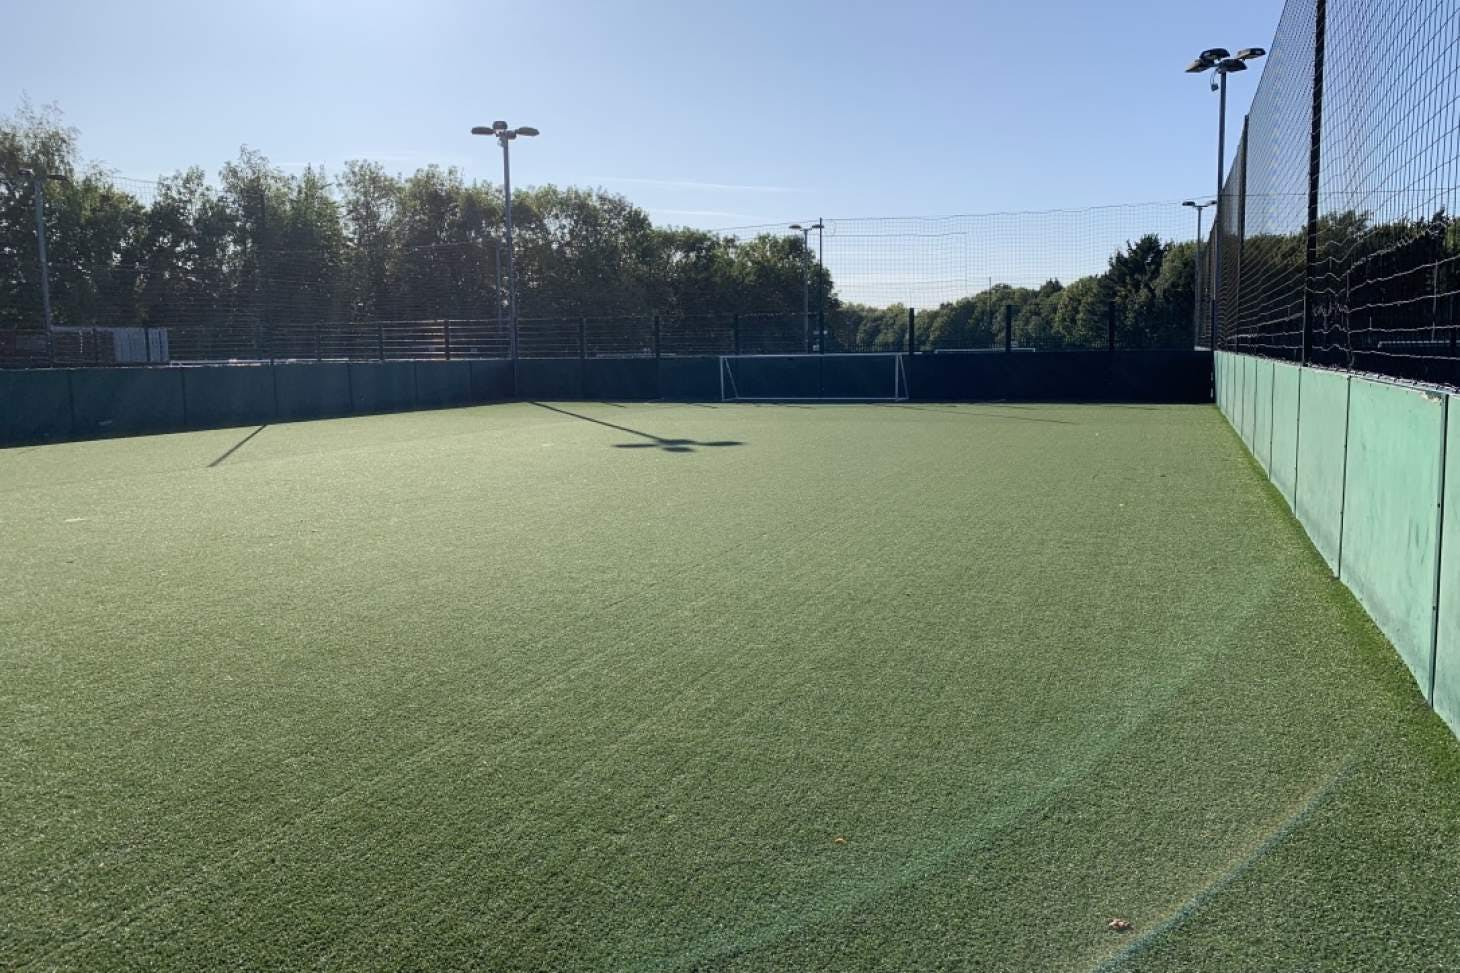 Basingstoke Soccer Centre 5 a side | 3G Astroturf football pitch